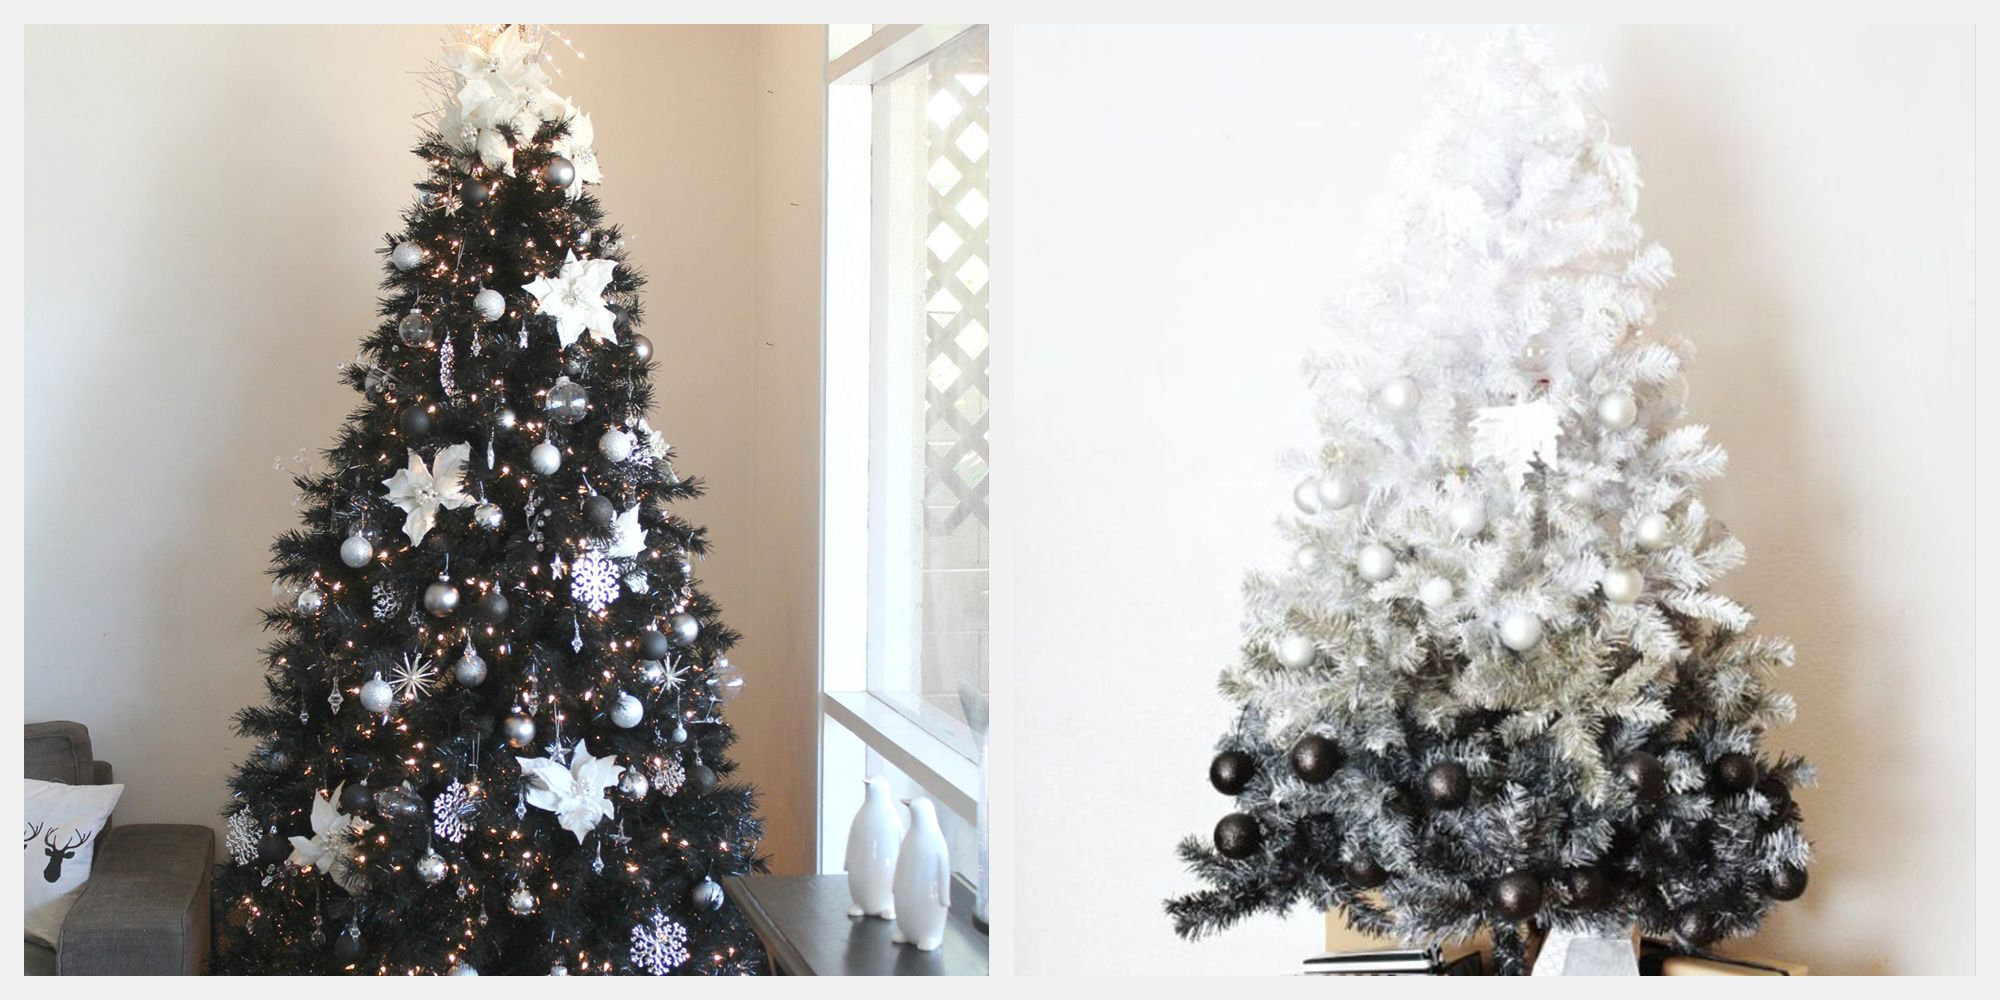 These Striking Black Christmas Trees Are Perfect for the NonConformist